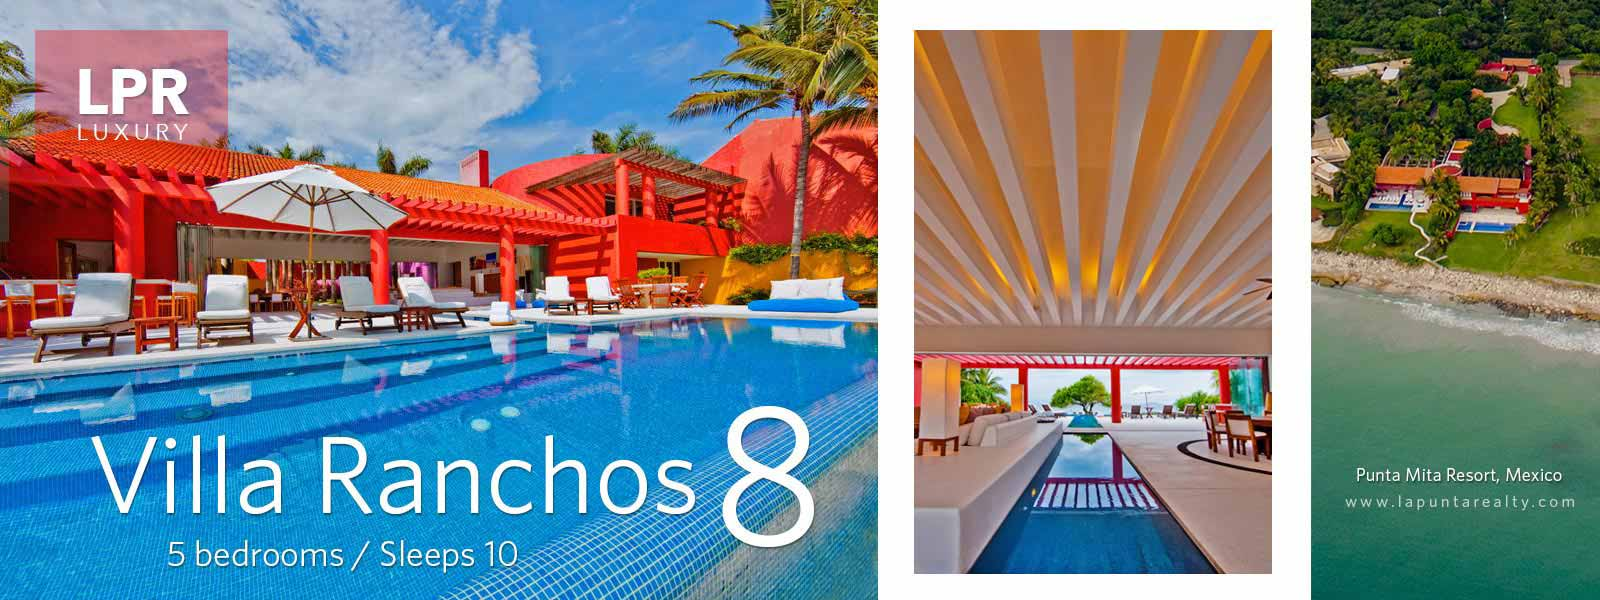 Villa Ranchos 8 - Luxury Punta Mita Rentals - Vacation Villas and Estates